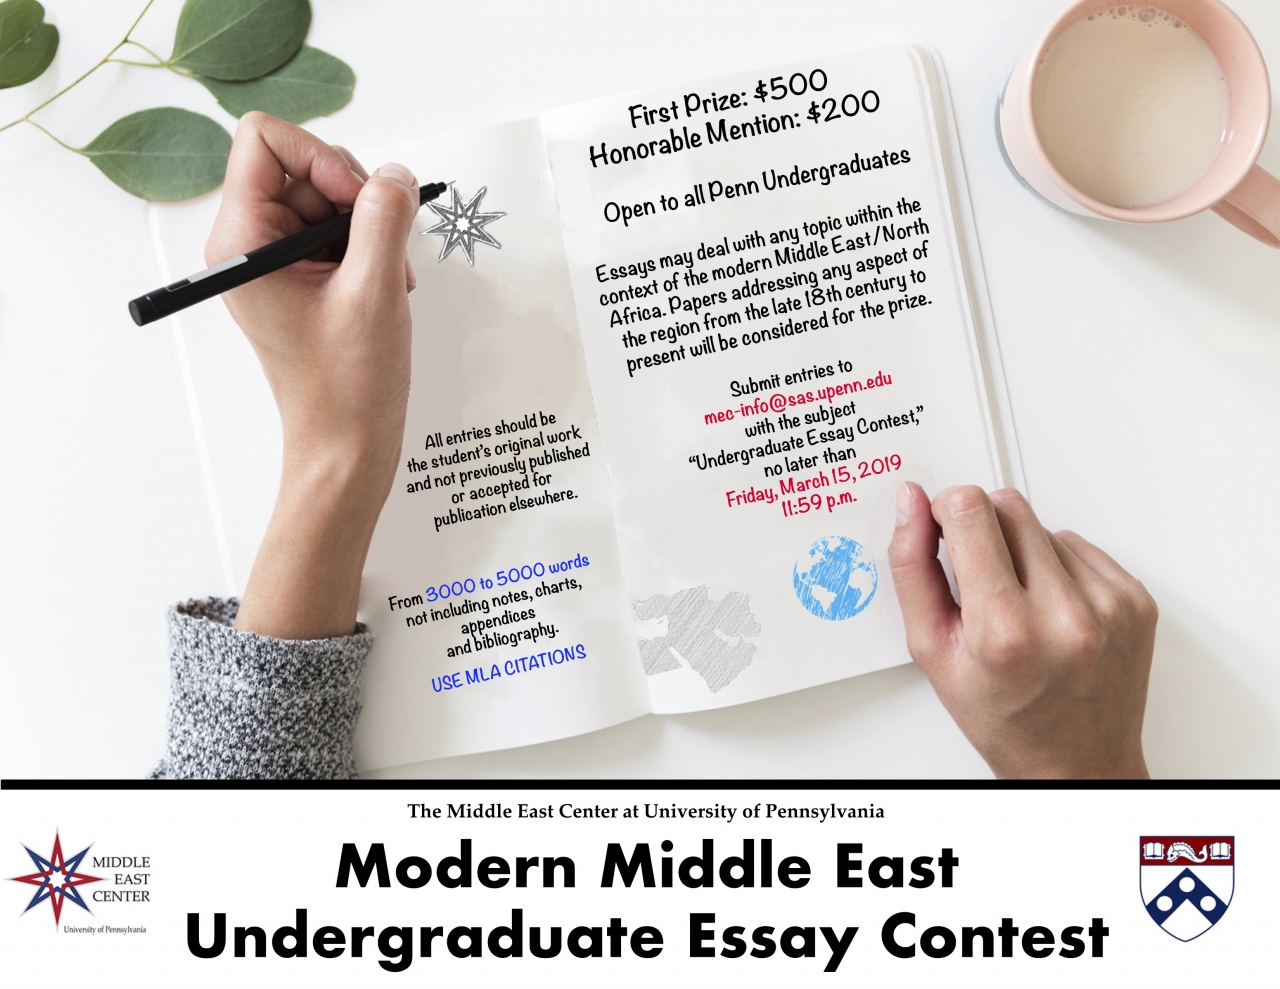 009 Essay Example Undergradessaycontest Remarkable Upenn Prompts Supplement Full